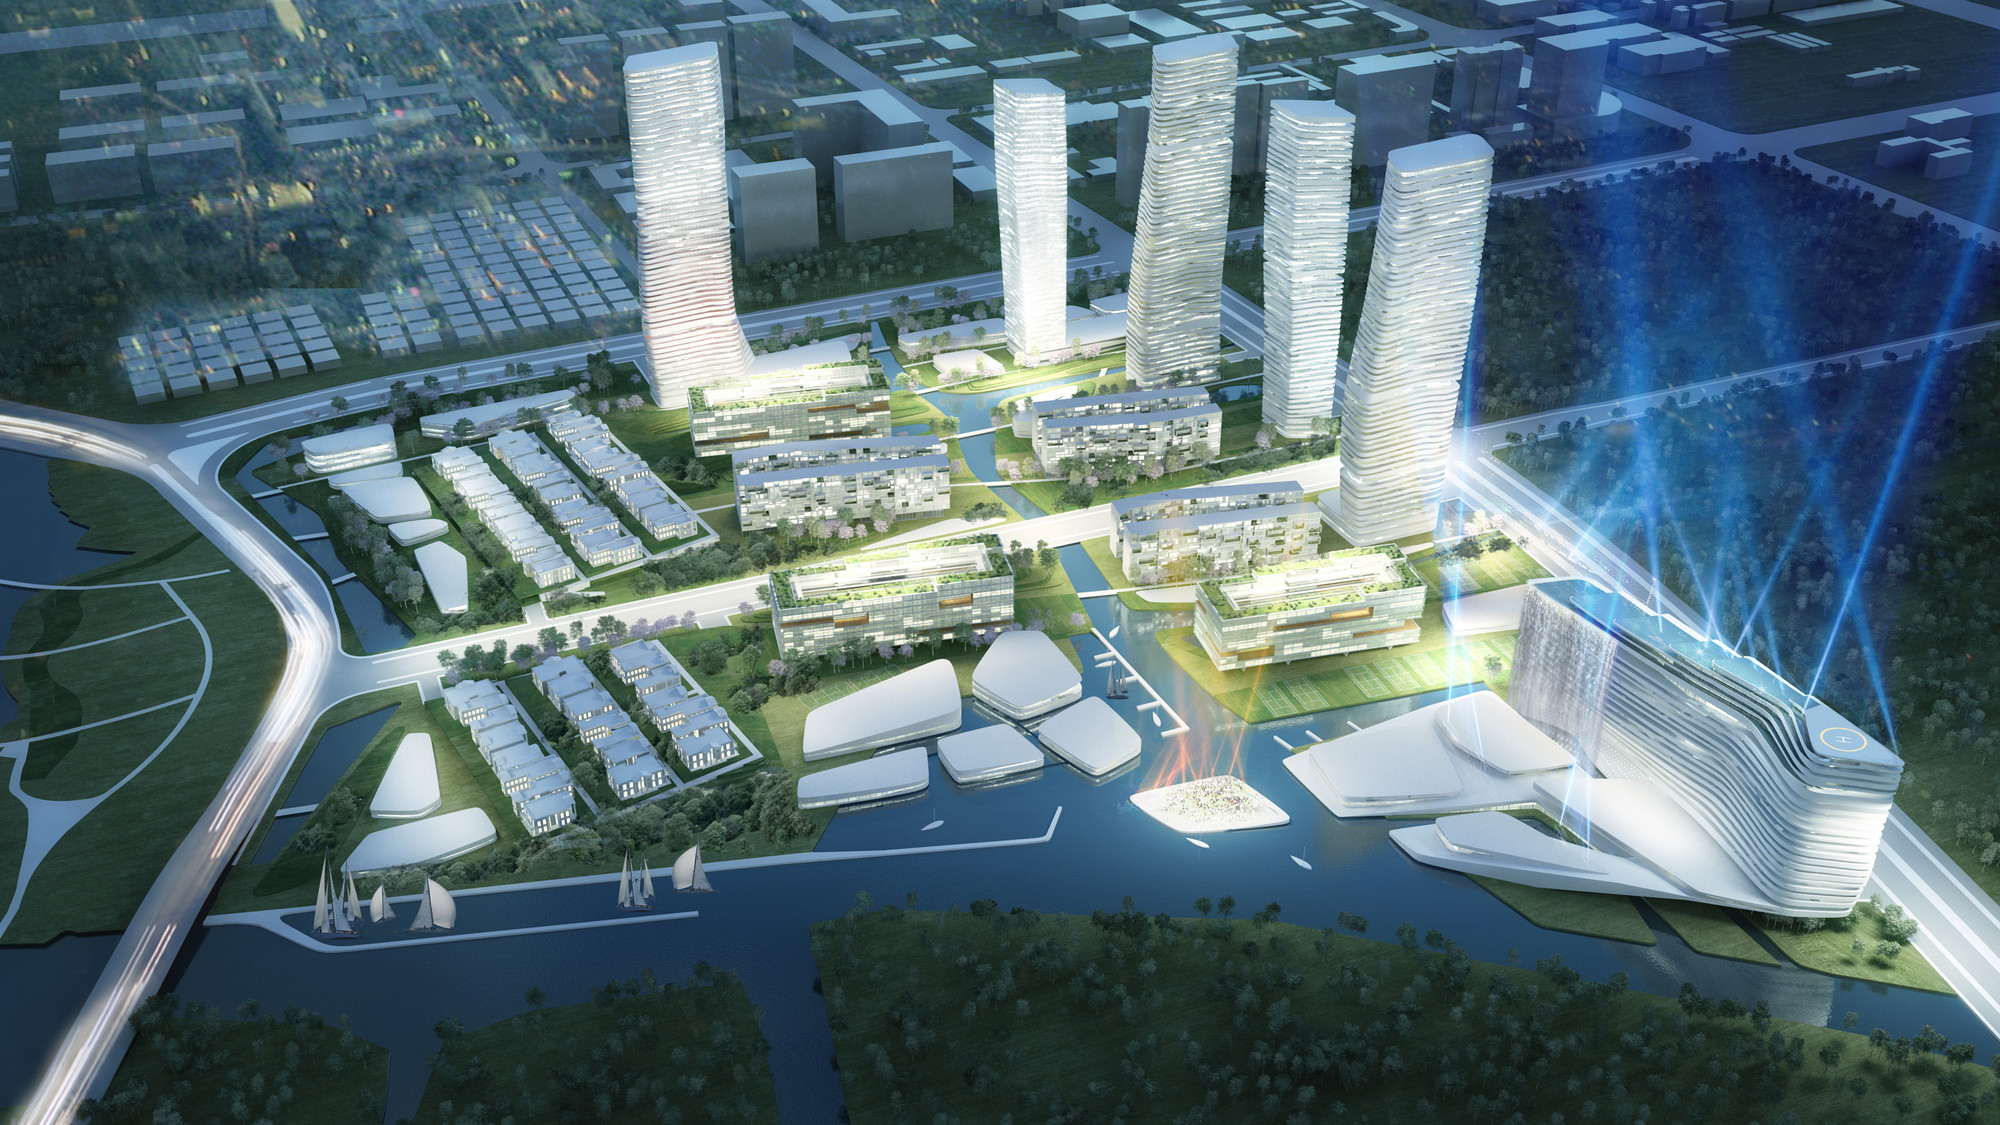 Wuxi Masterplan Mixed Use Building Complex Proposal